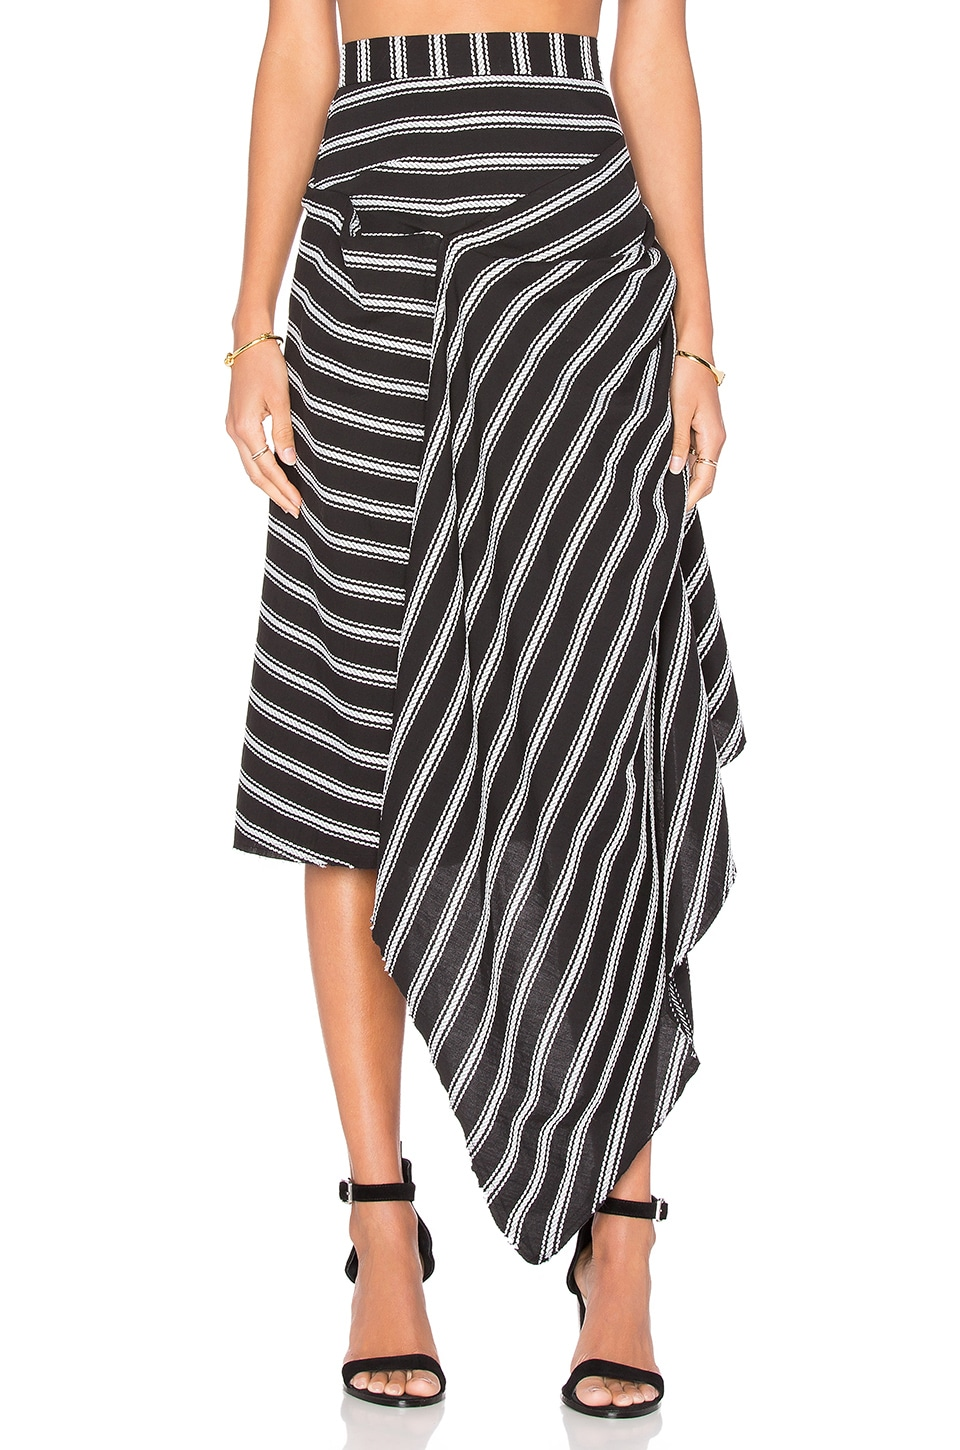 Acler Avril Stripe Skirt in Black | REVOLVE